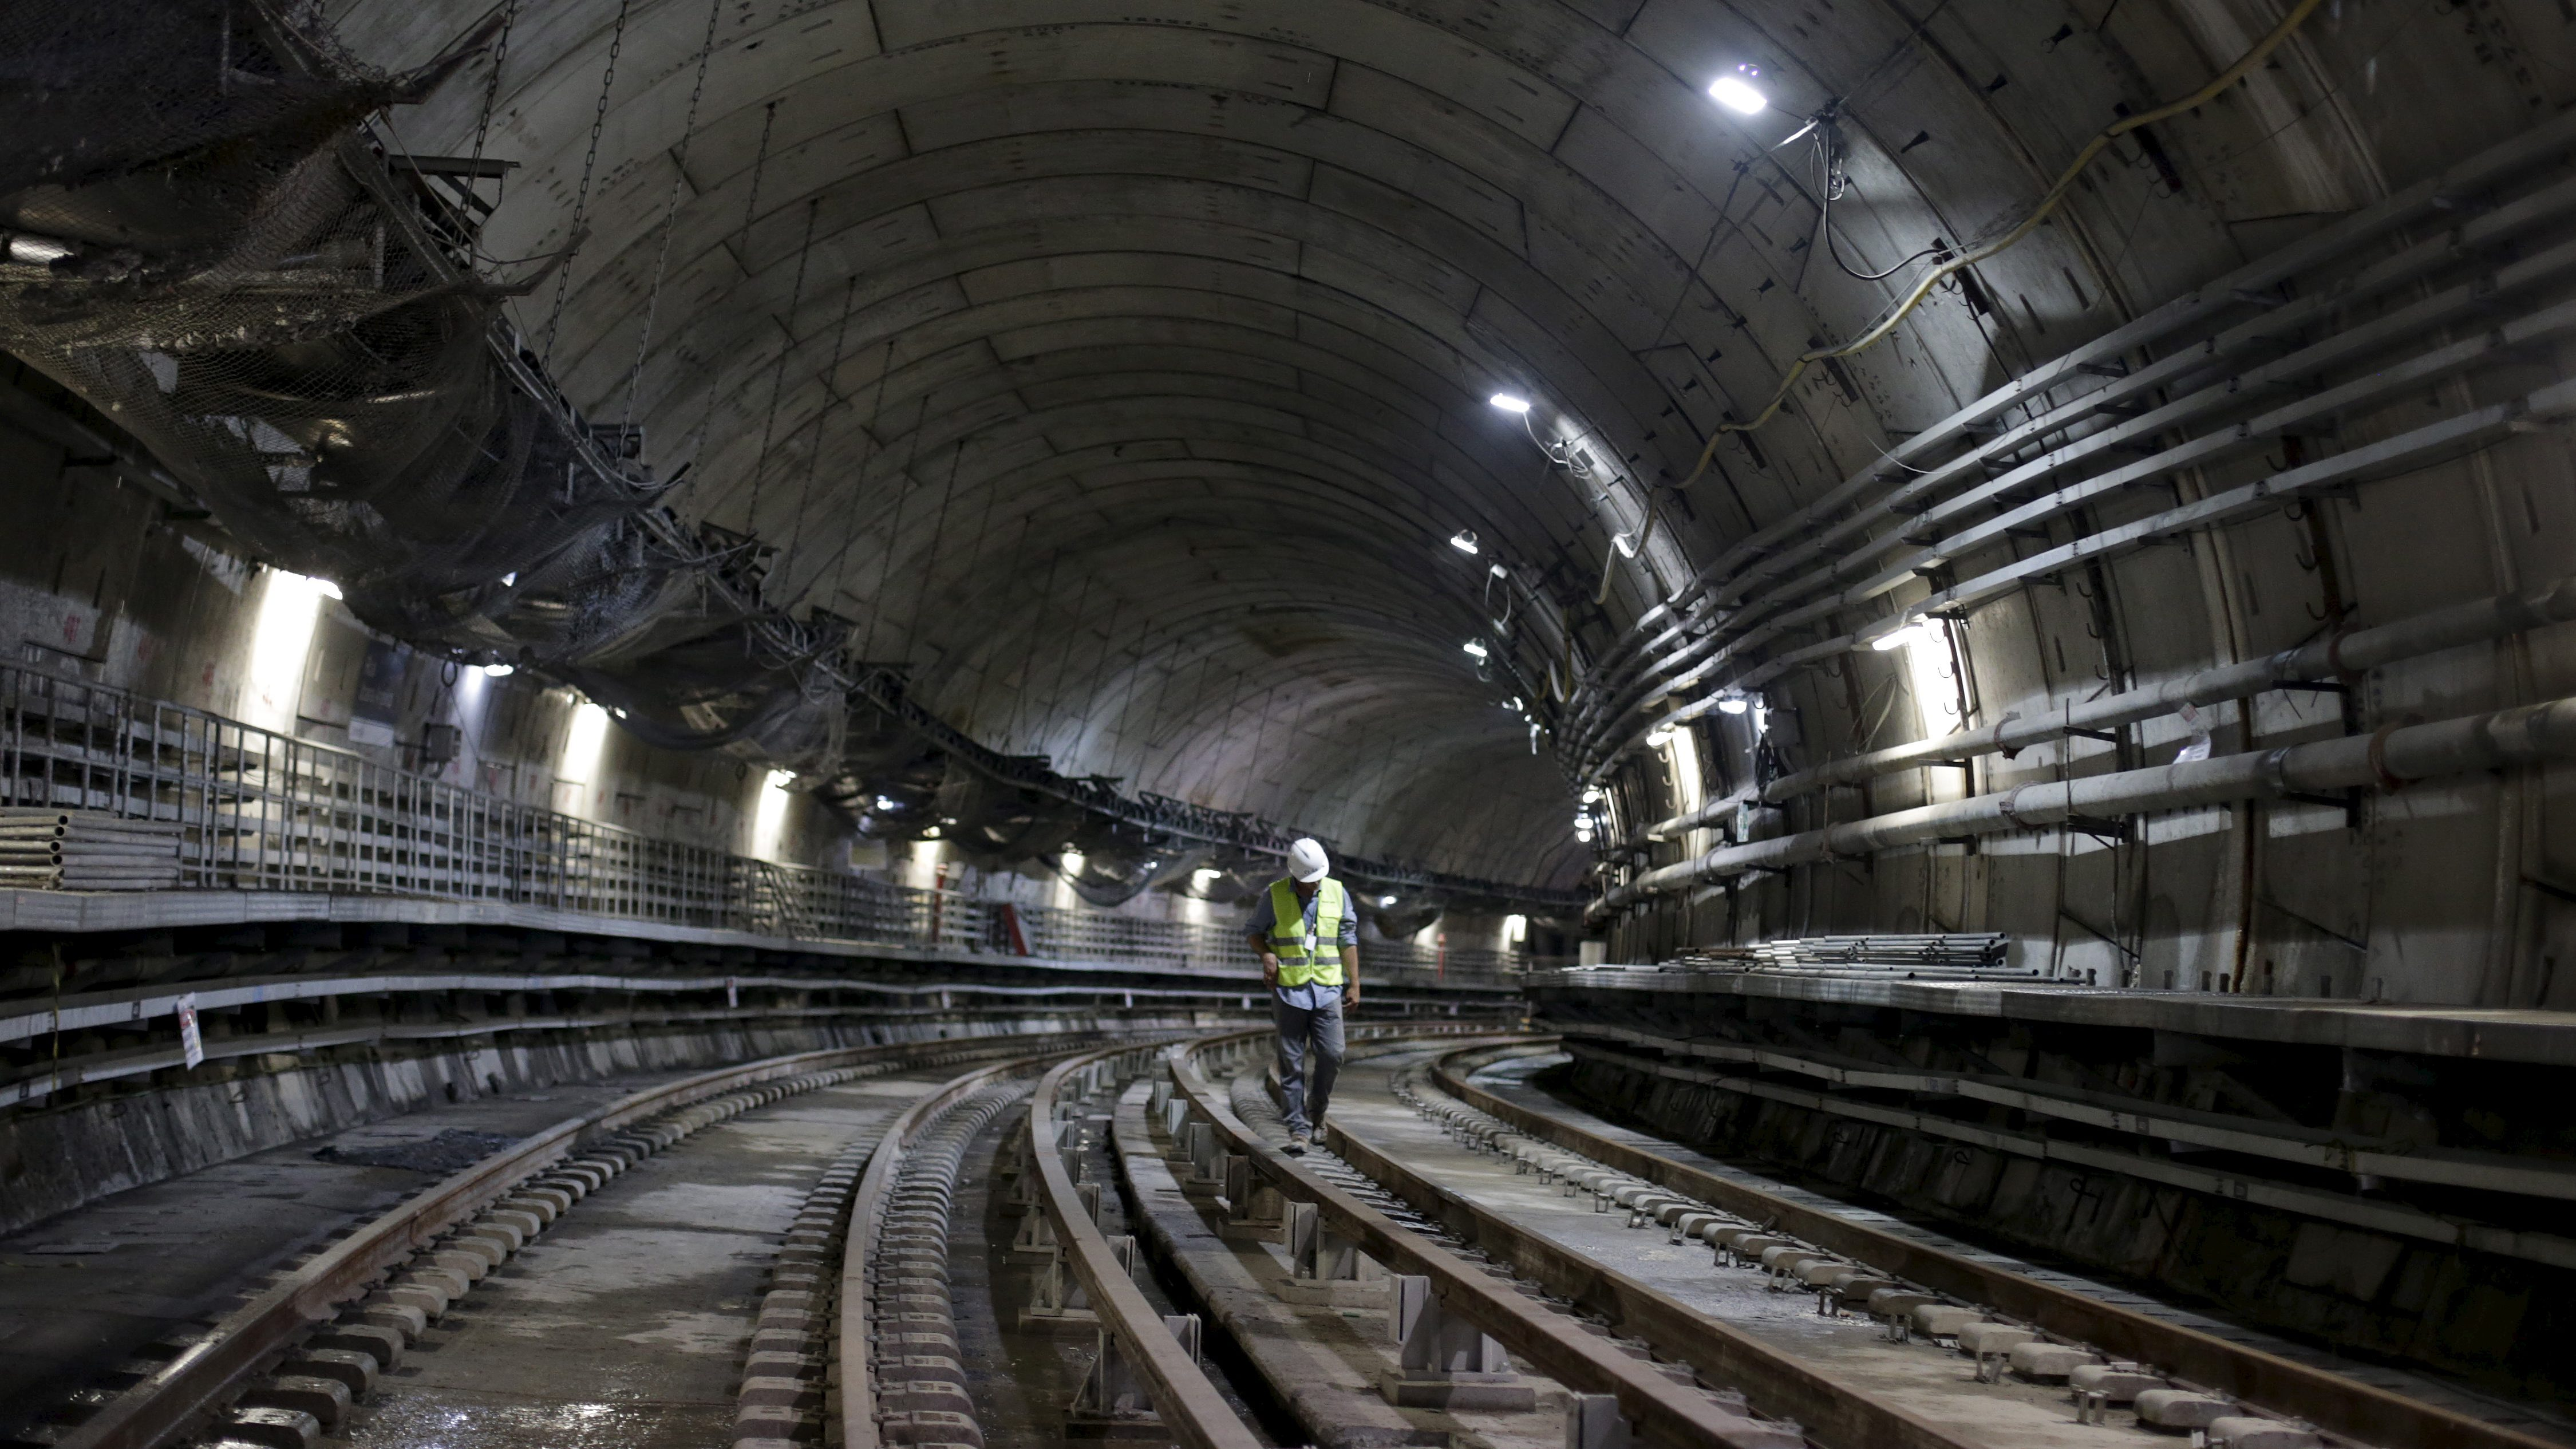 A man walks on the railroad of a metro line extension under construction near Nossa Senhora da Paz station in Rio de Janeiro, Brazil, February 24, 2016. The extension, which will connect Rio de Janeiro's Olympic Park in Barra de Tijuca with the rest of the city, is at risk of not being finished before the Games start in August, if a delayed development bank loan is not disbursed, two senior government sources told Reuters on Monday. REUTERS/Ricardo Moraes - RTX28DN1